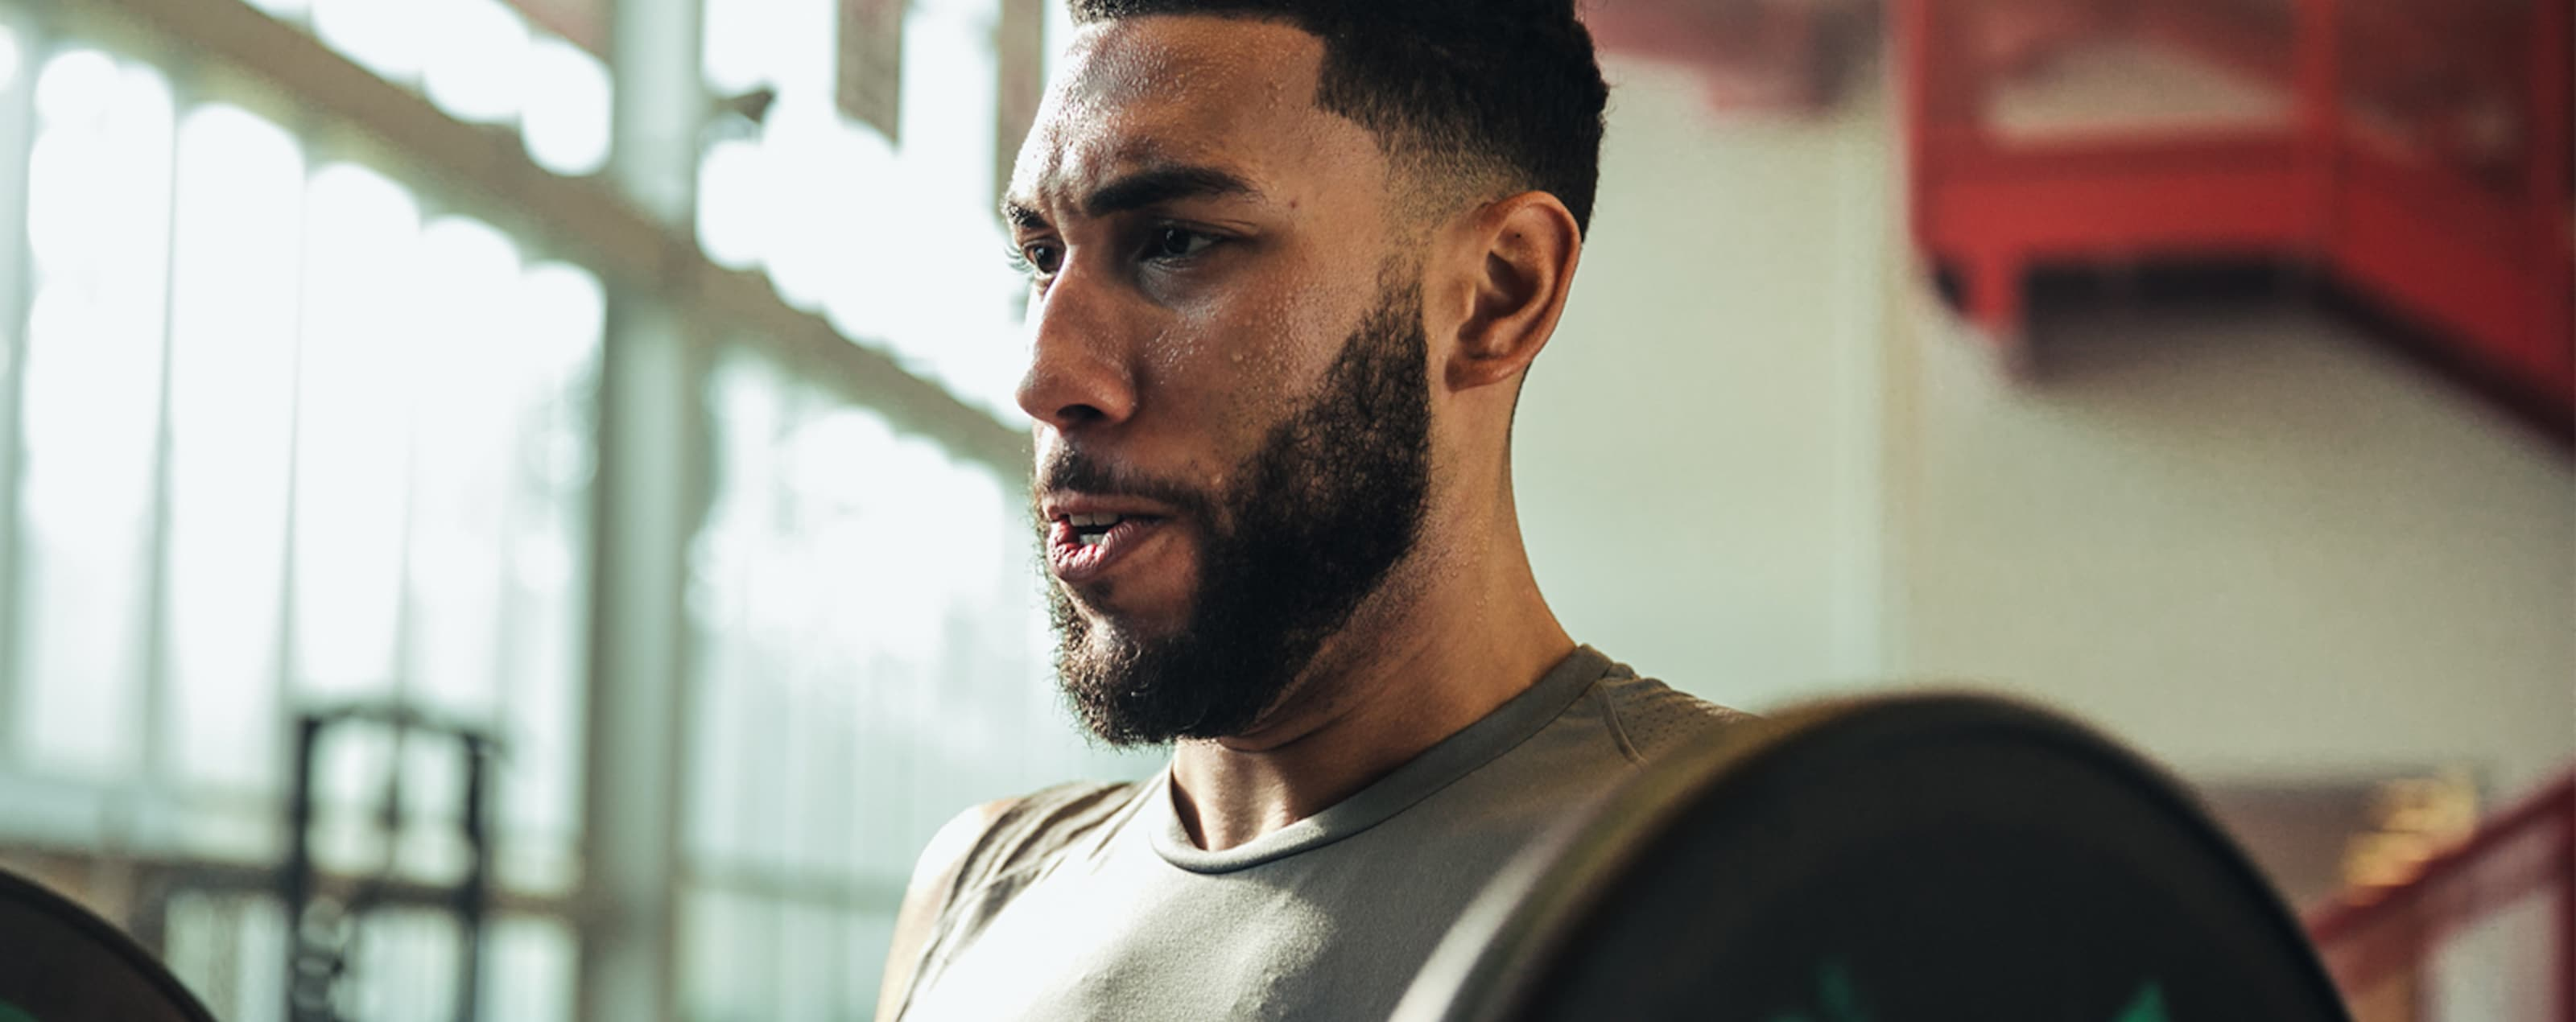 Denzel Valentine in the weight room